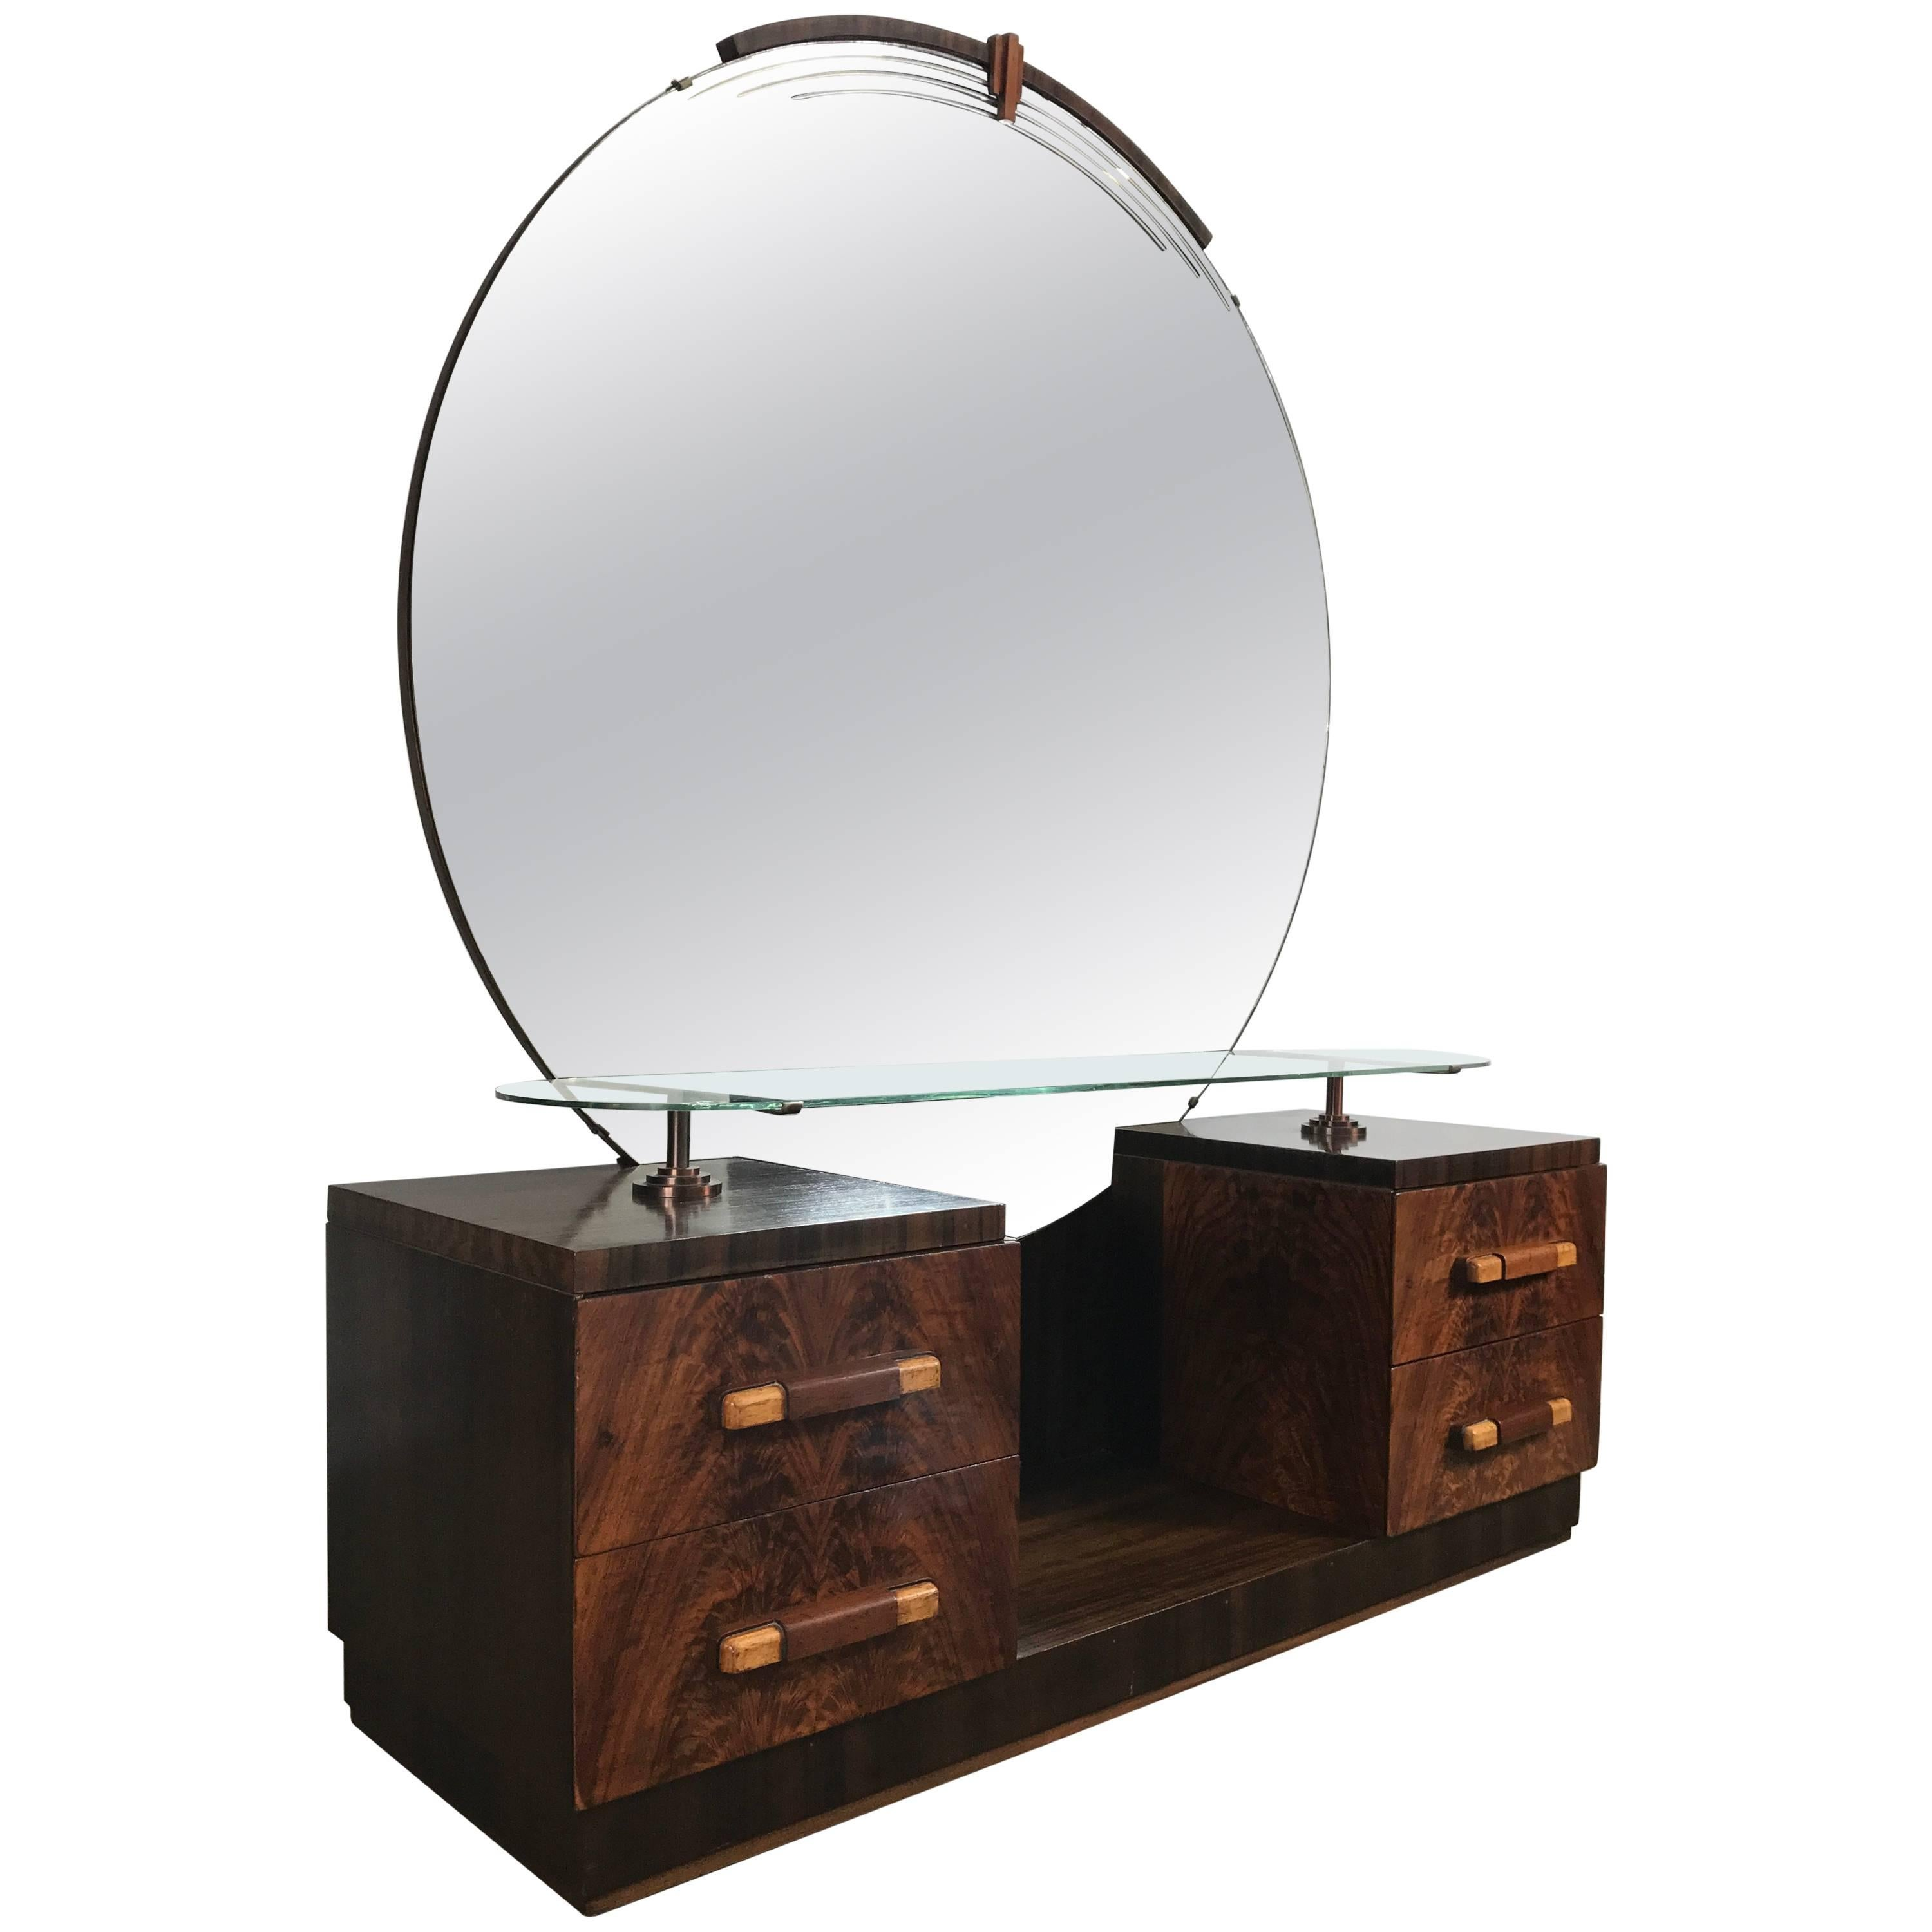 American Art Deco Vanity, Dressing Table, Mirror Manner Of Donald Deskey  For Sale